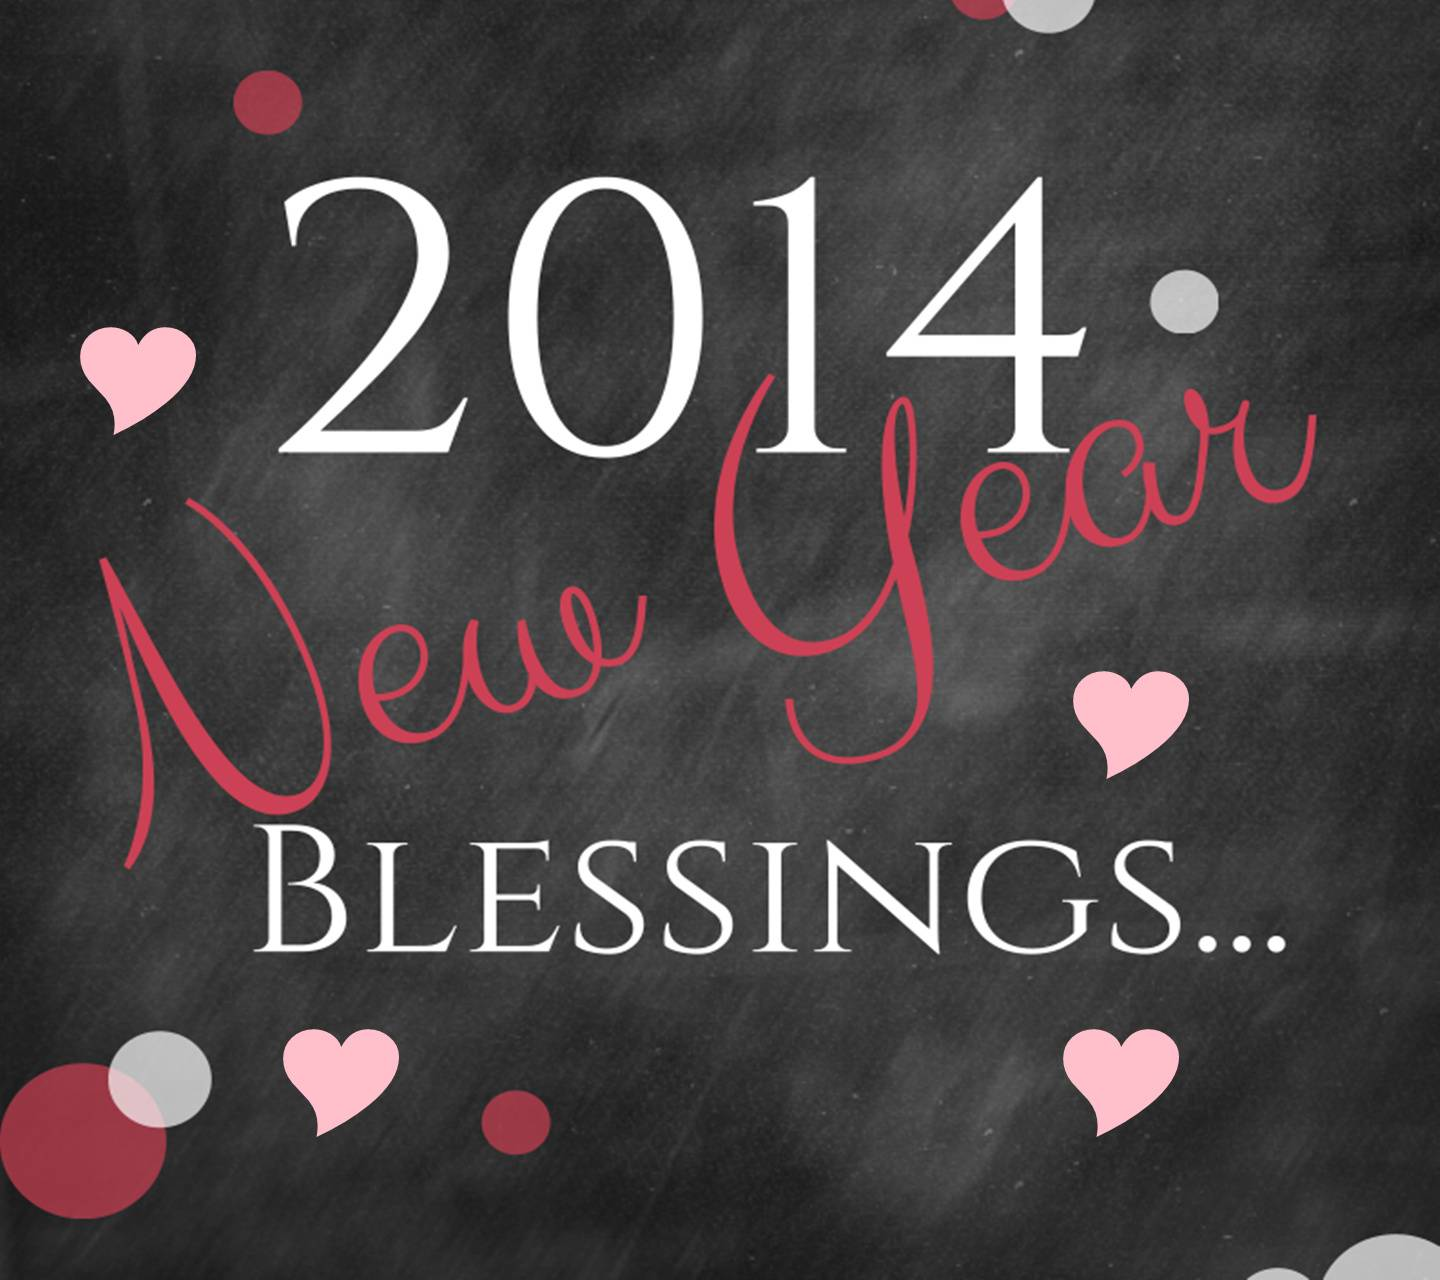 Blessings New Year